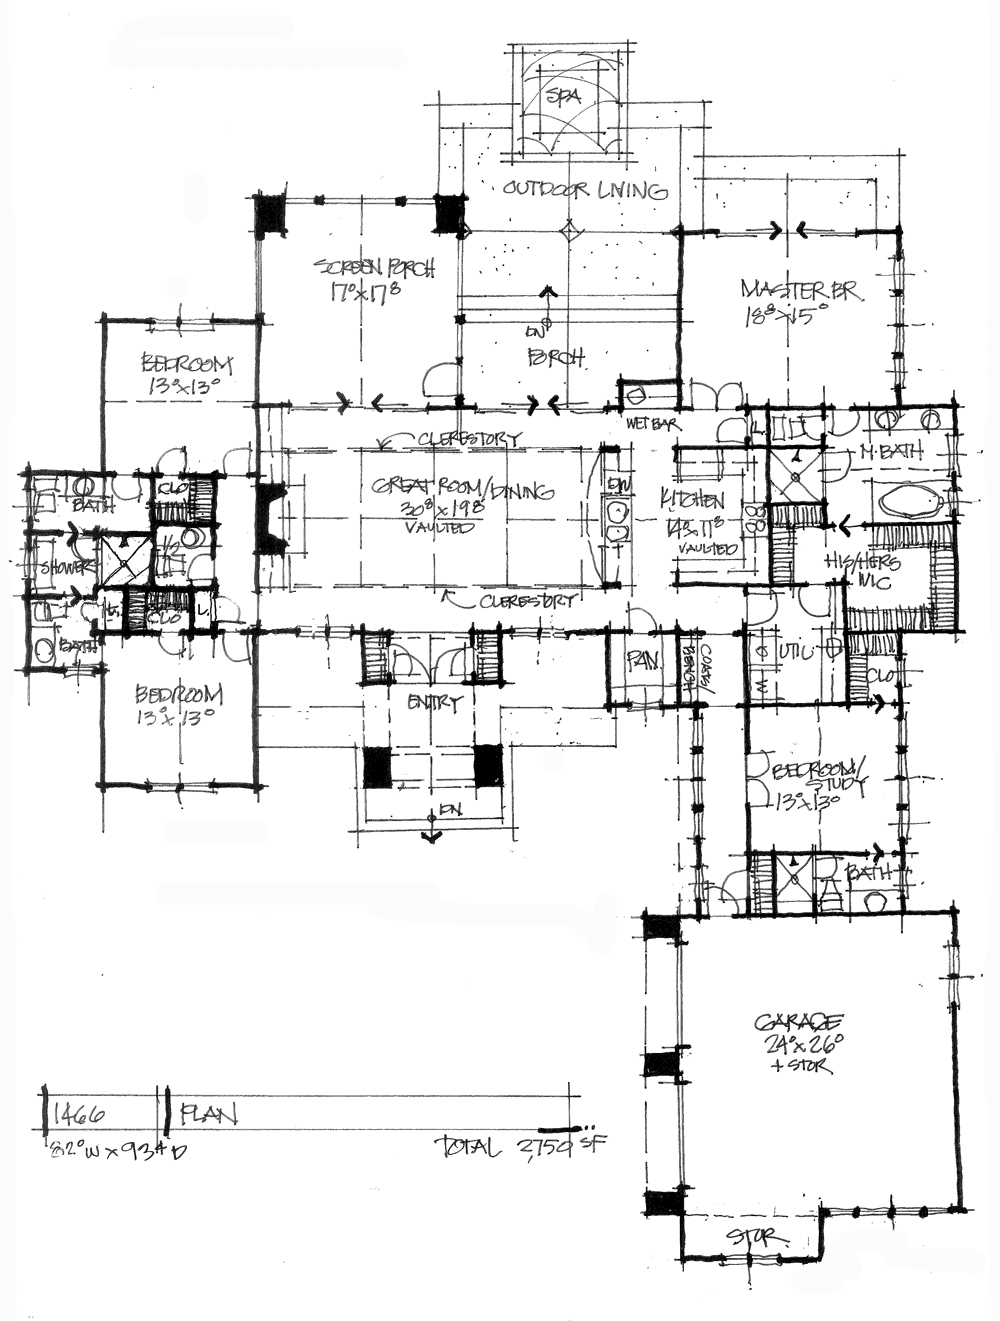 Conceptual house plan 1466 is an urban ranch design.